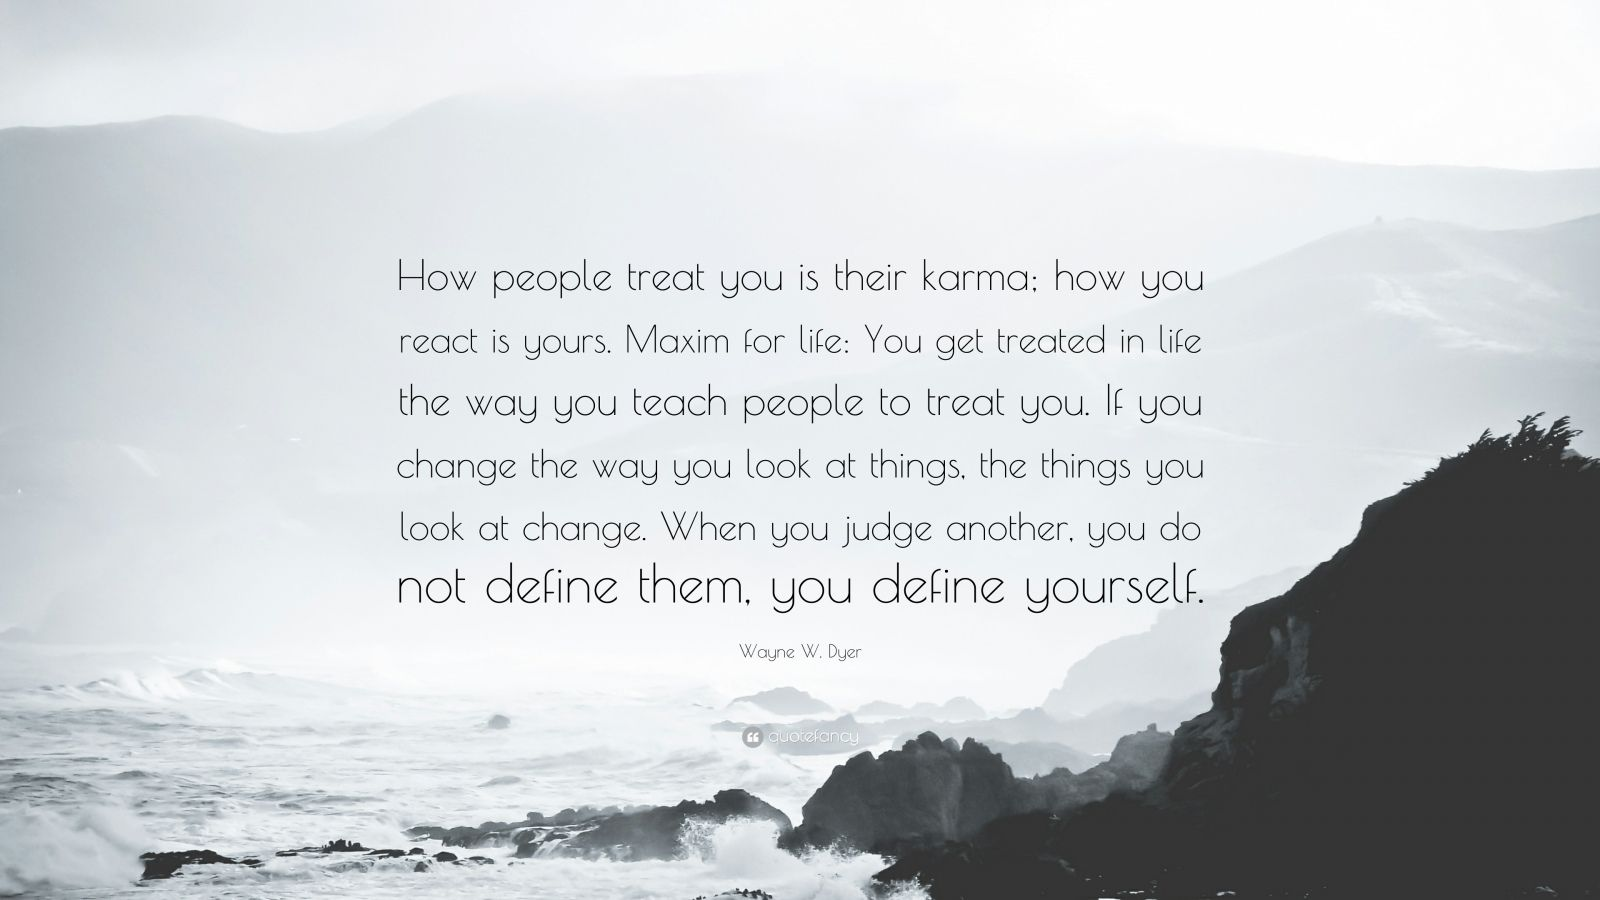 "Wayne W. Dyer Quote: ""How people treat you is their karma; how you react is yours. Maxim for life: You get treated in life the way you teach people to treat you. If you change the way you look at things, the things you look at change. When you judge another, you do not define them, you define yourself."""